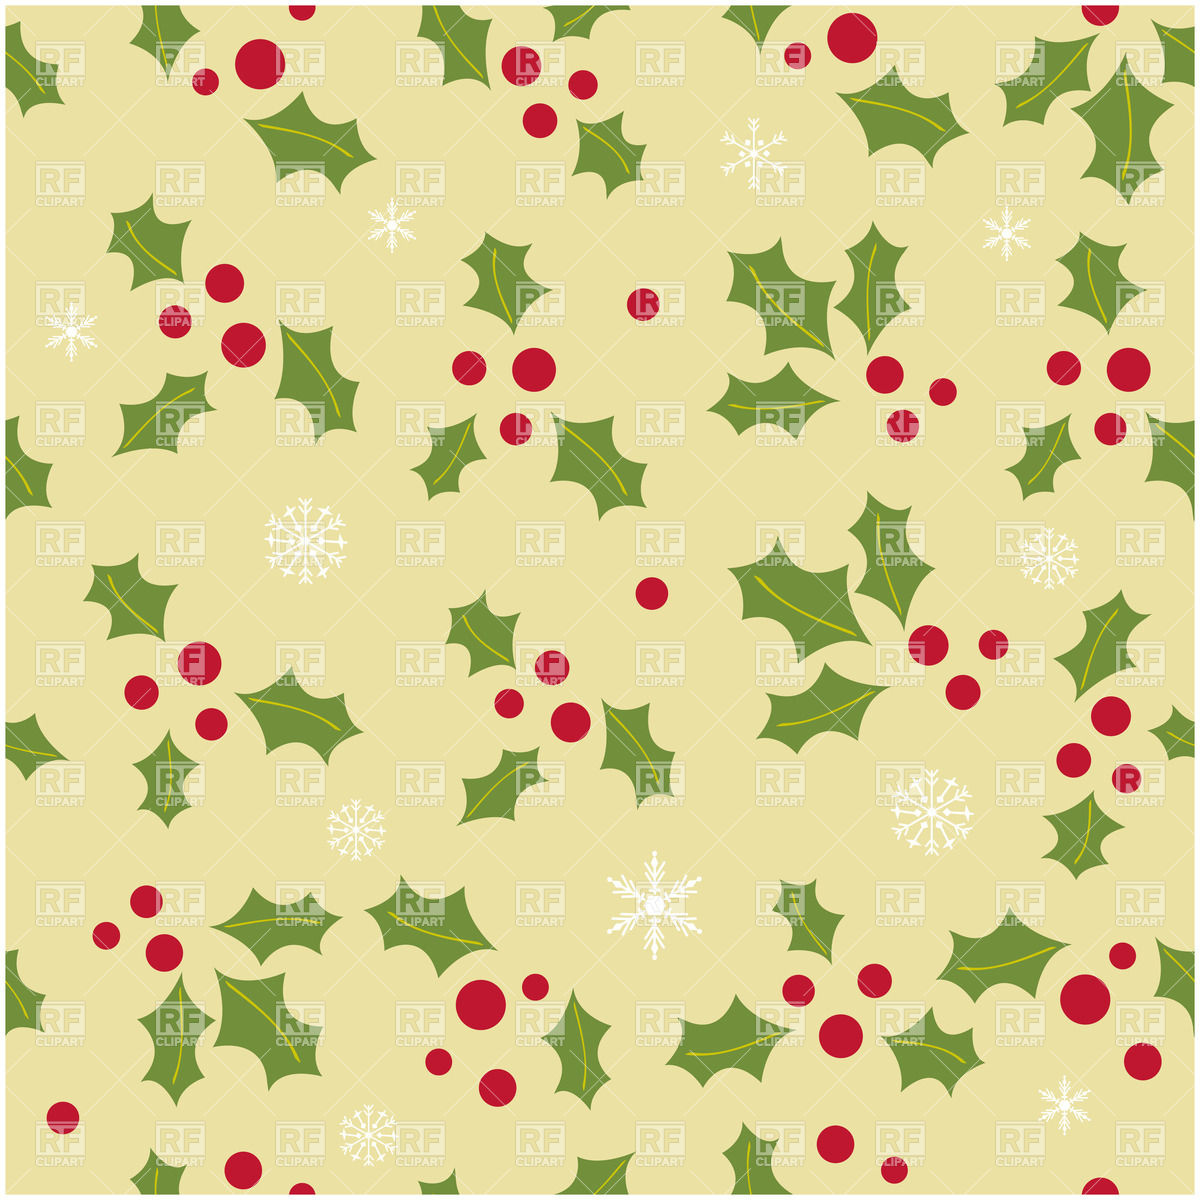 1200x1200 Seamless Christmas Background With Simple Holly Berry Leaves